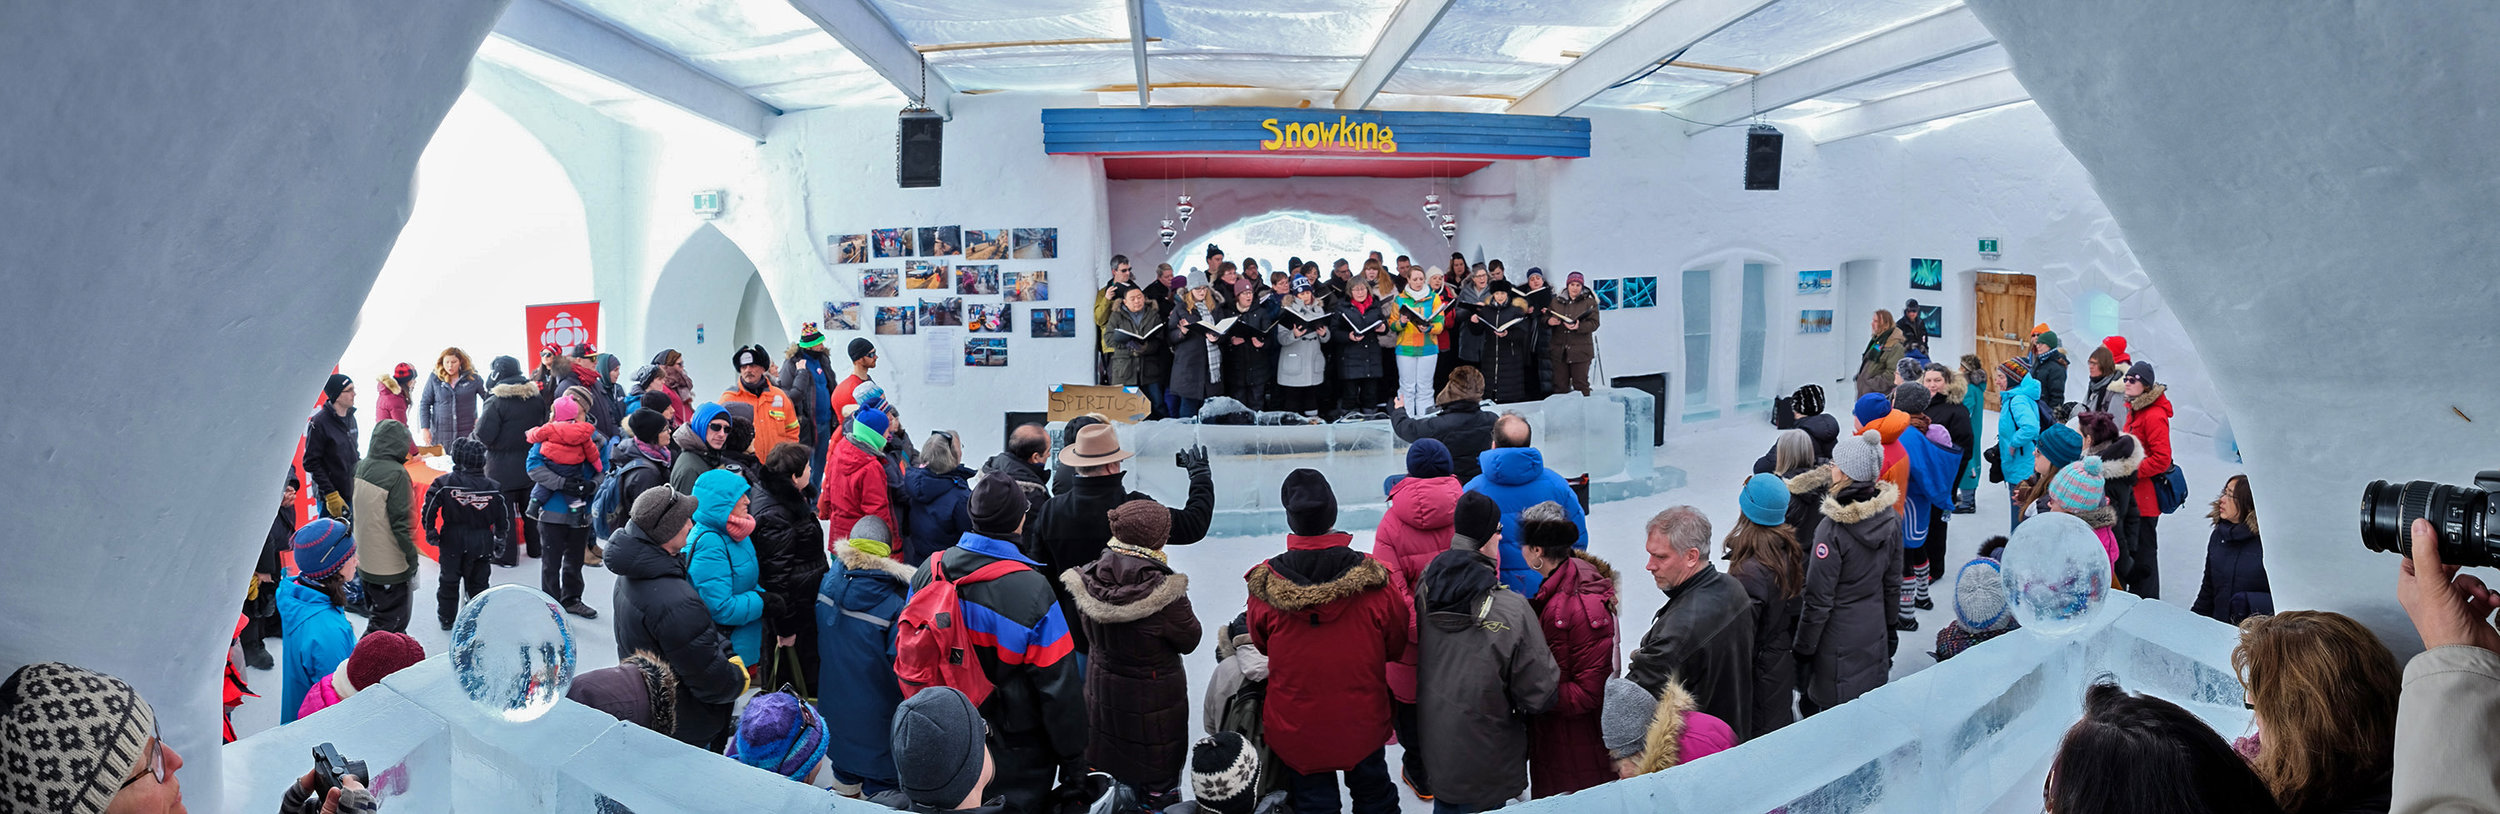 Spiritus performs a short program as they squeeze their way on stage in the Snow Castle surrounded by onlookers. This definitely qualifies as the top three of the most unusual venues the choir has ever performed in.